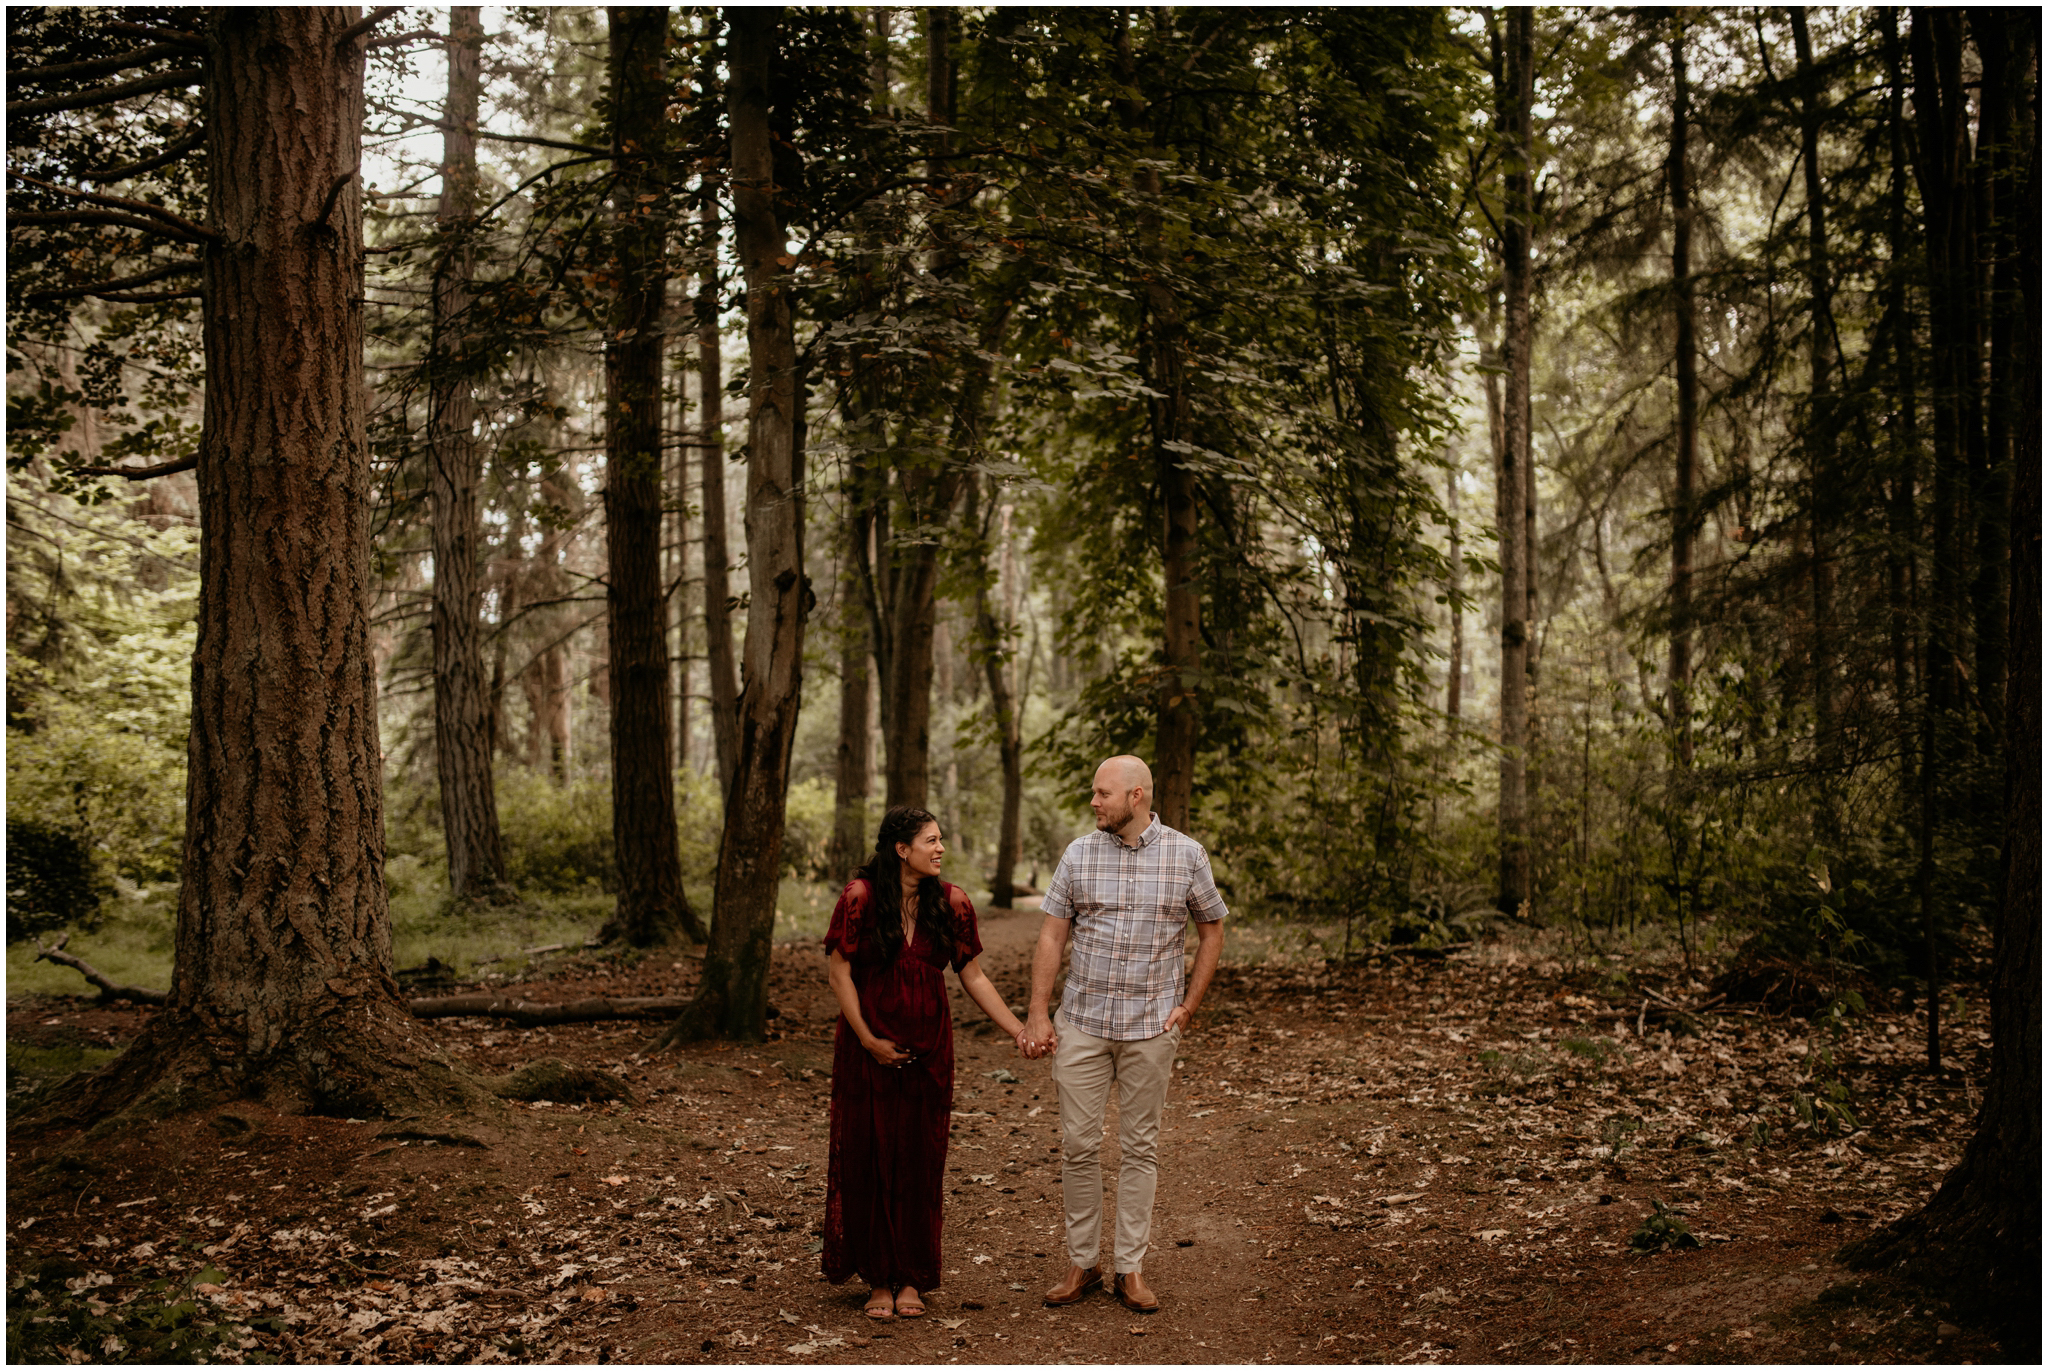 caitlin-jake-maternity-session-seattle-portrait-photographer-009.jpg